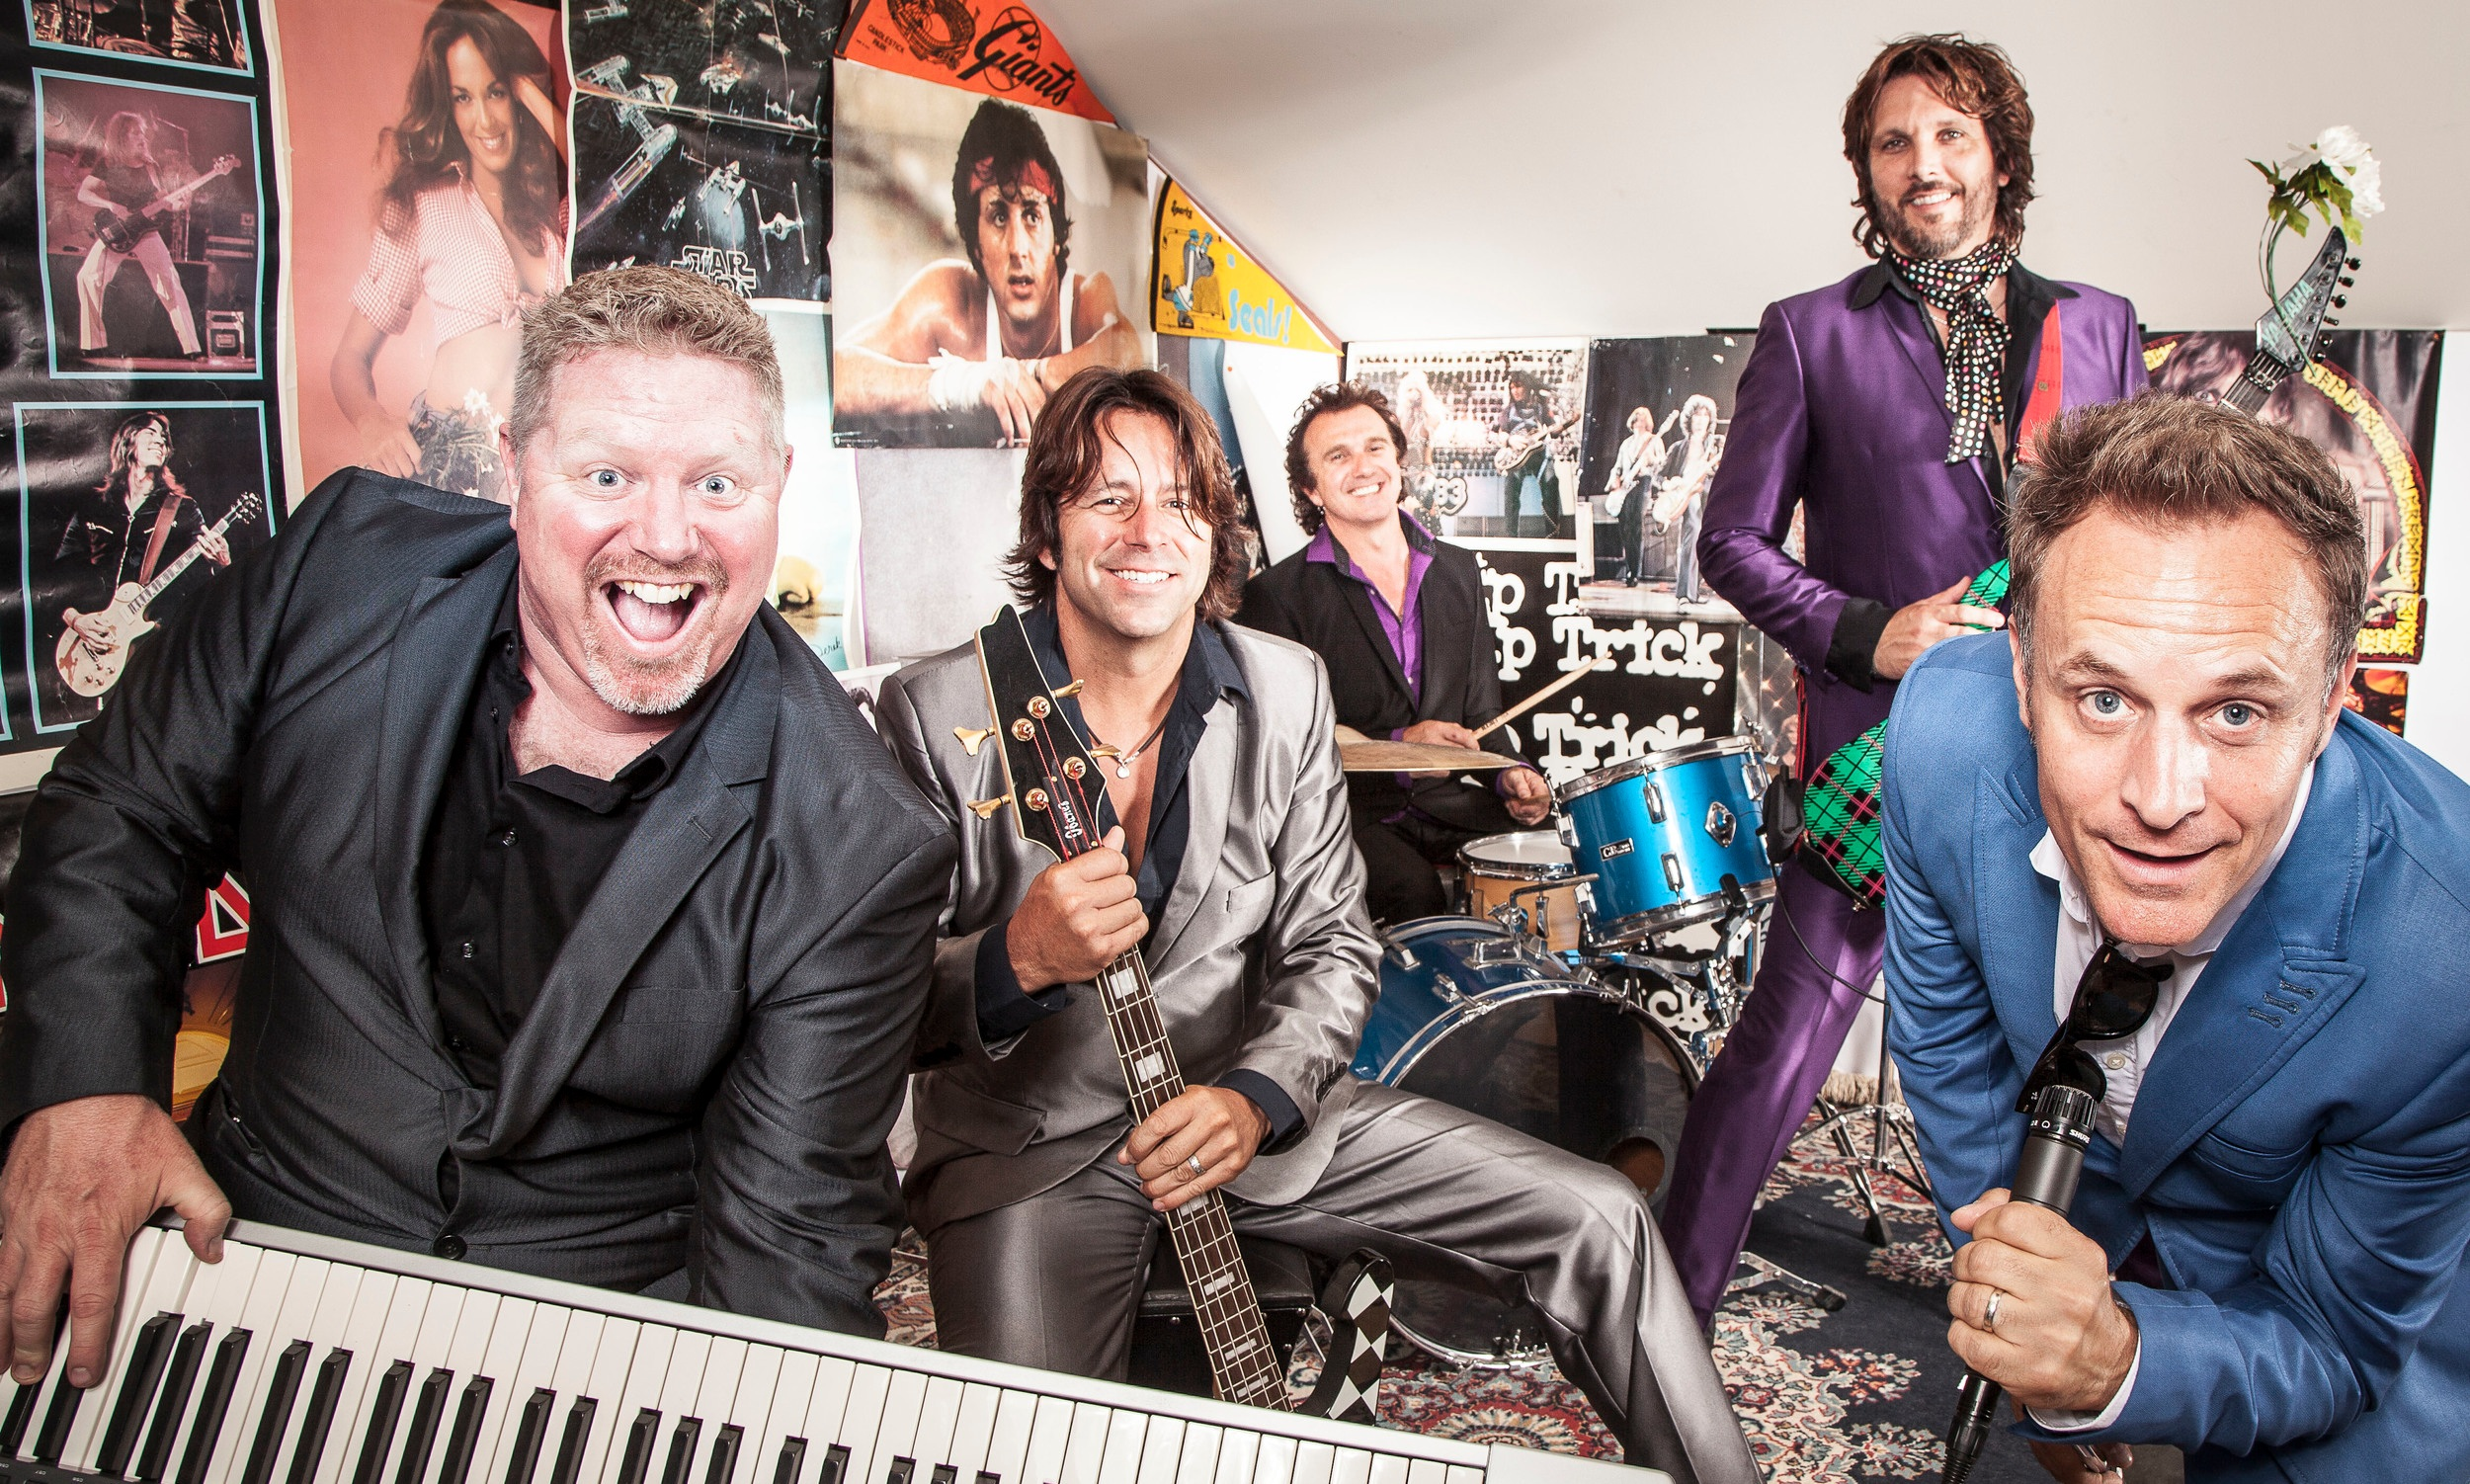 wonder bread 5 - Wonder Bread 5 delivers high energy rock and dance hits that keep you on your feet. Five dynamic performers stage a show sure to get you dancing in the street with infectious hits from the 60's to today.